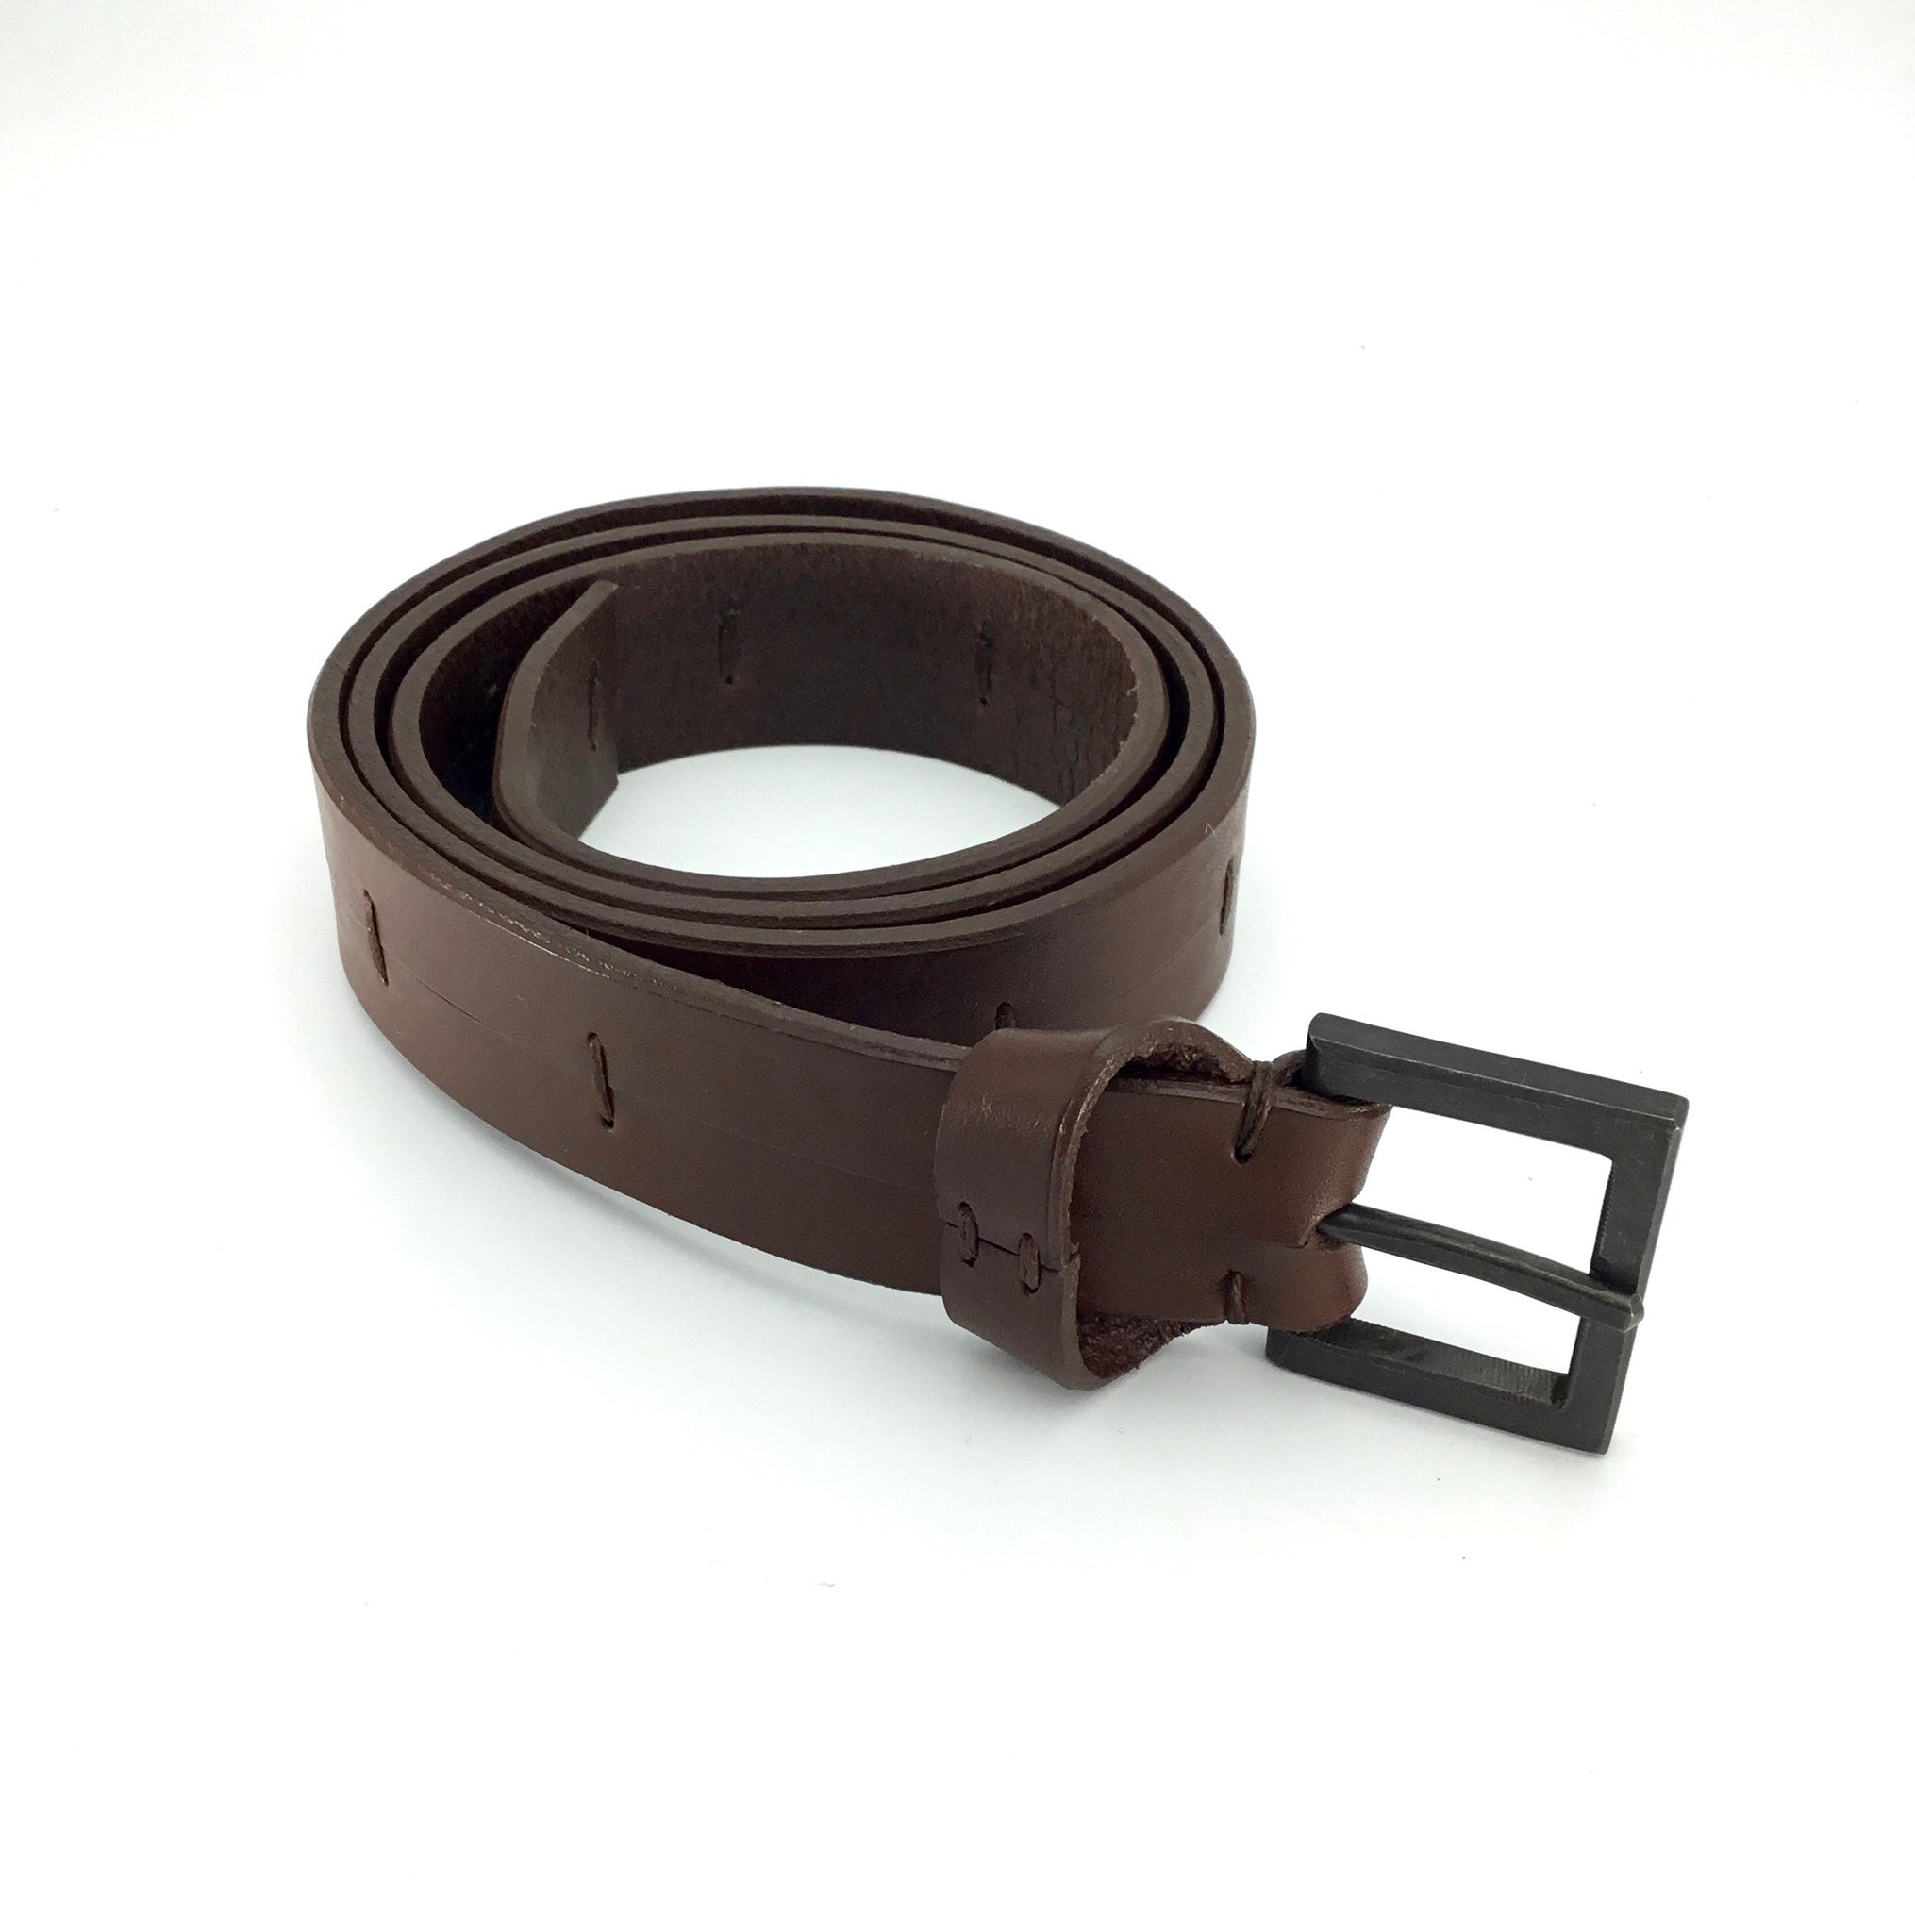 Johnny Farah Quadrato Belt